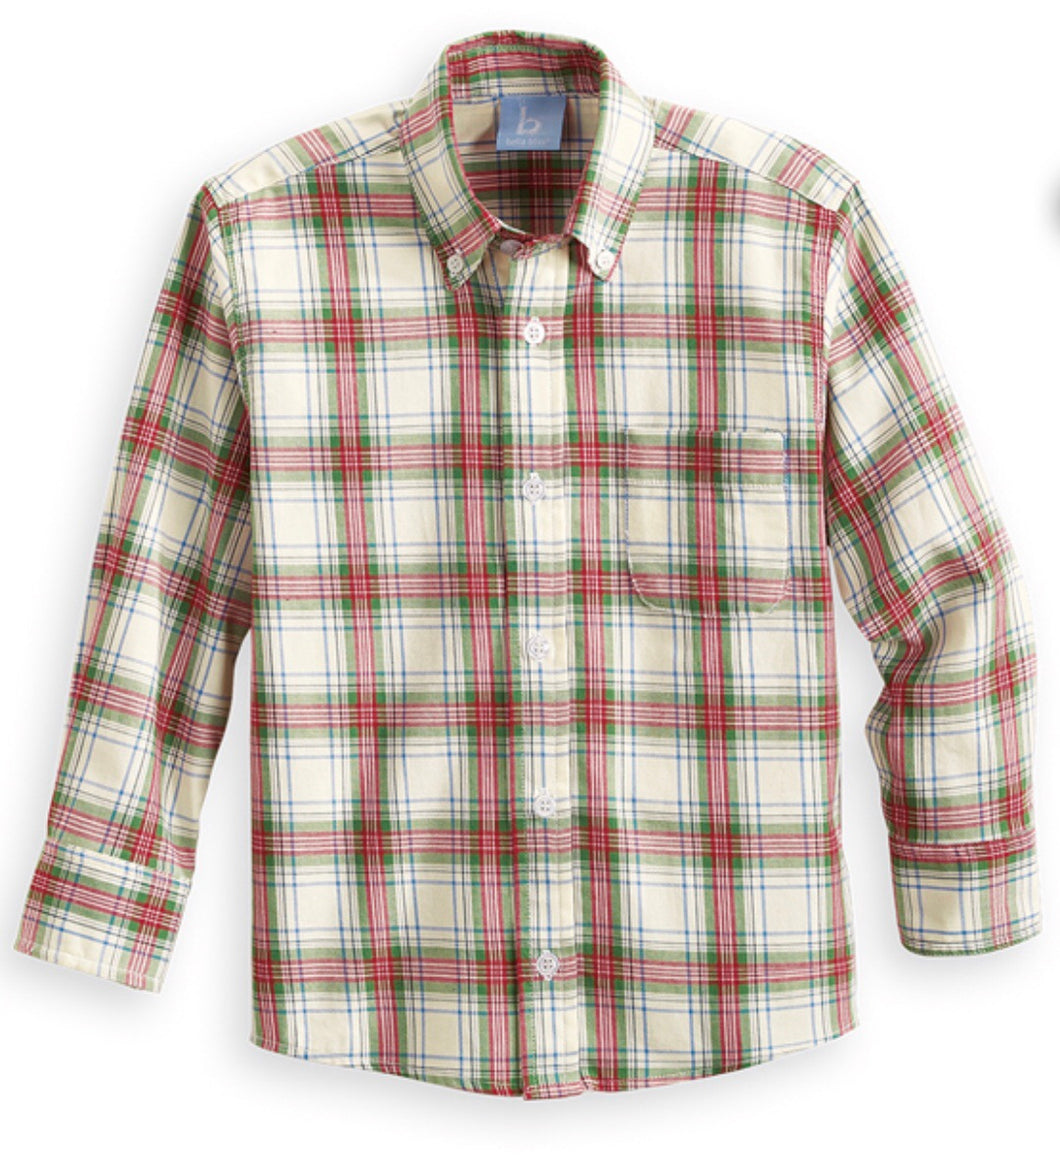 Provence Plaid Button-down Dress Shirt